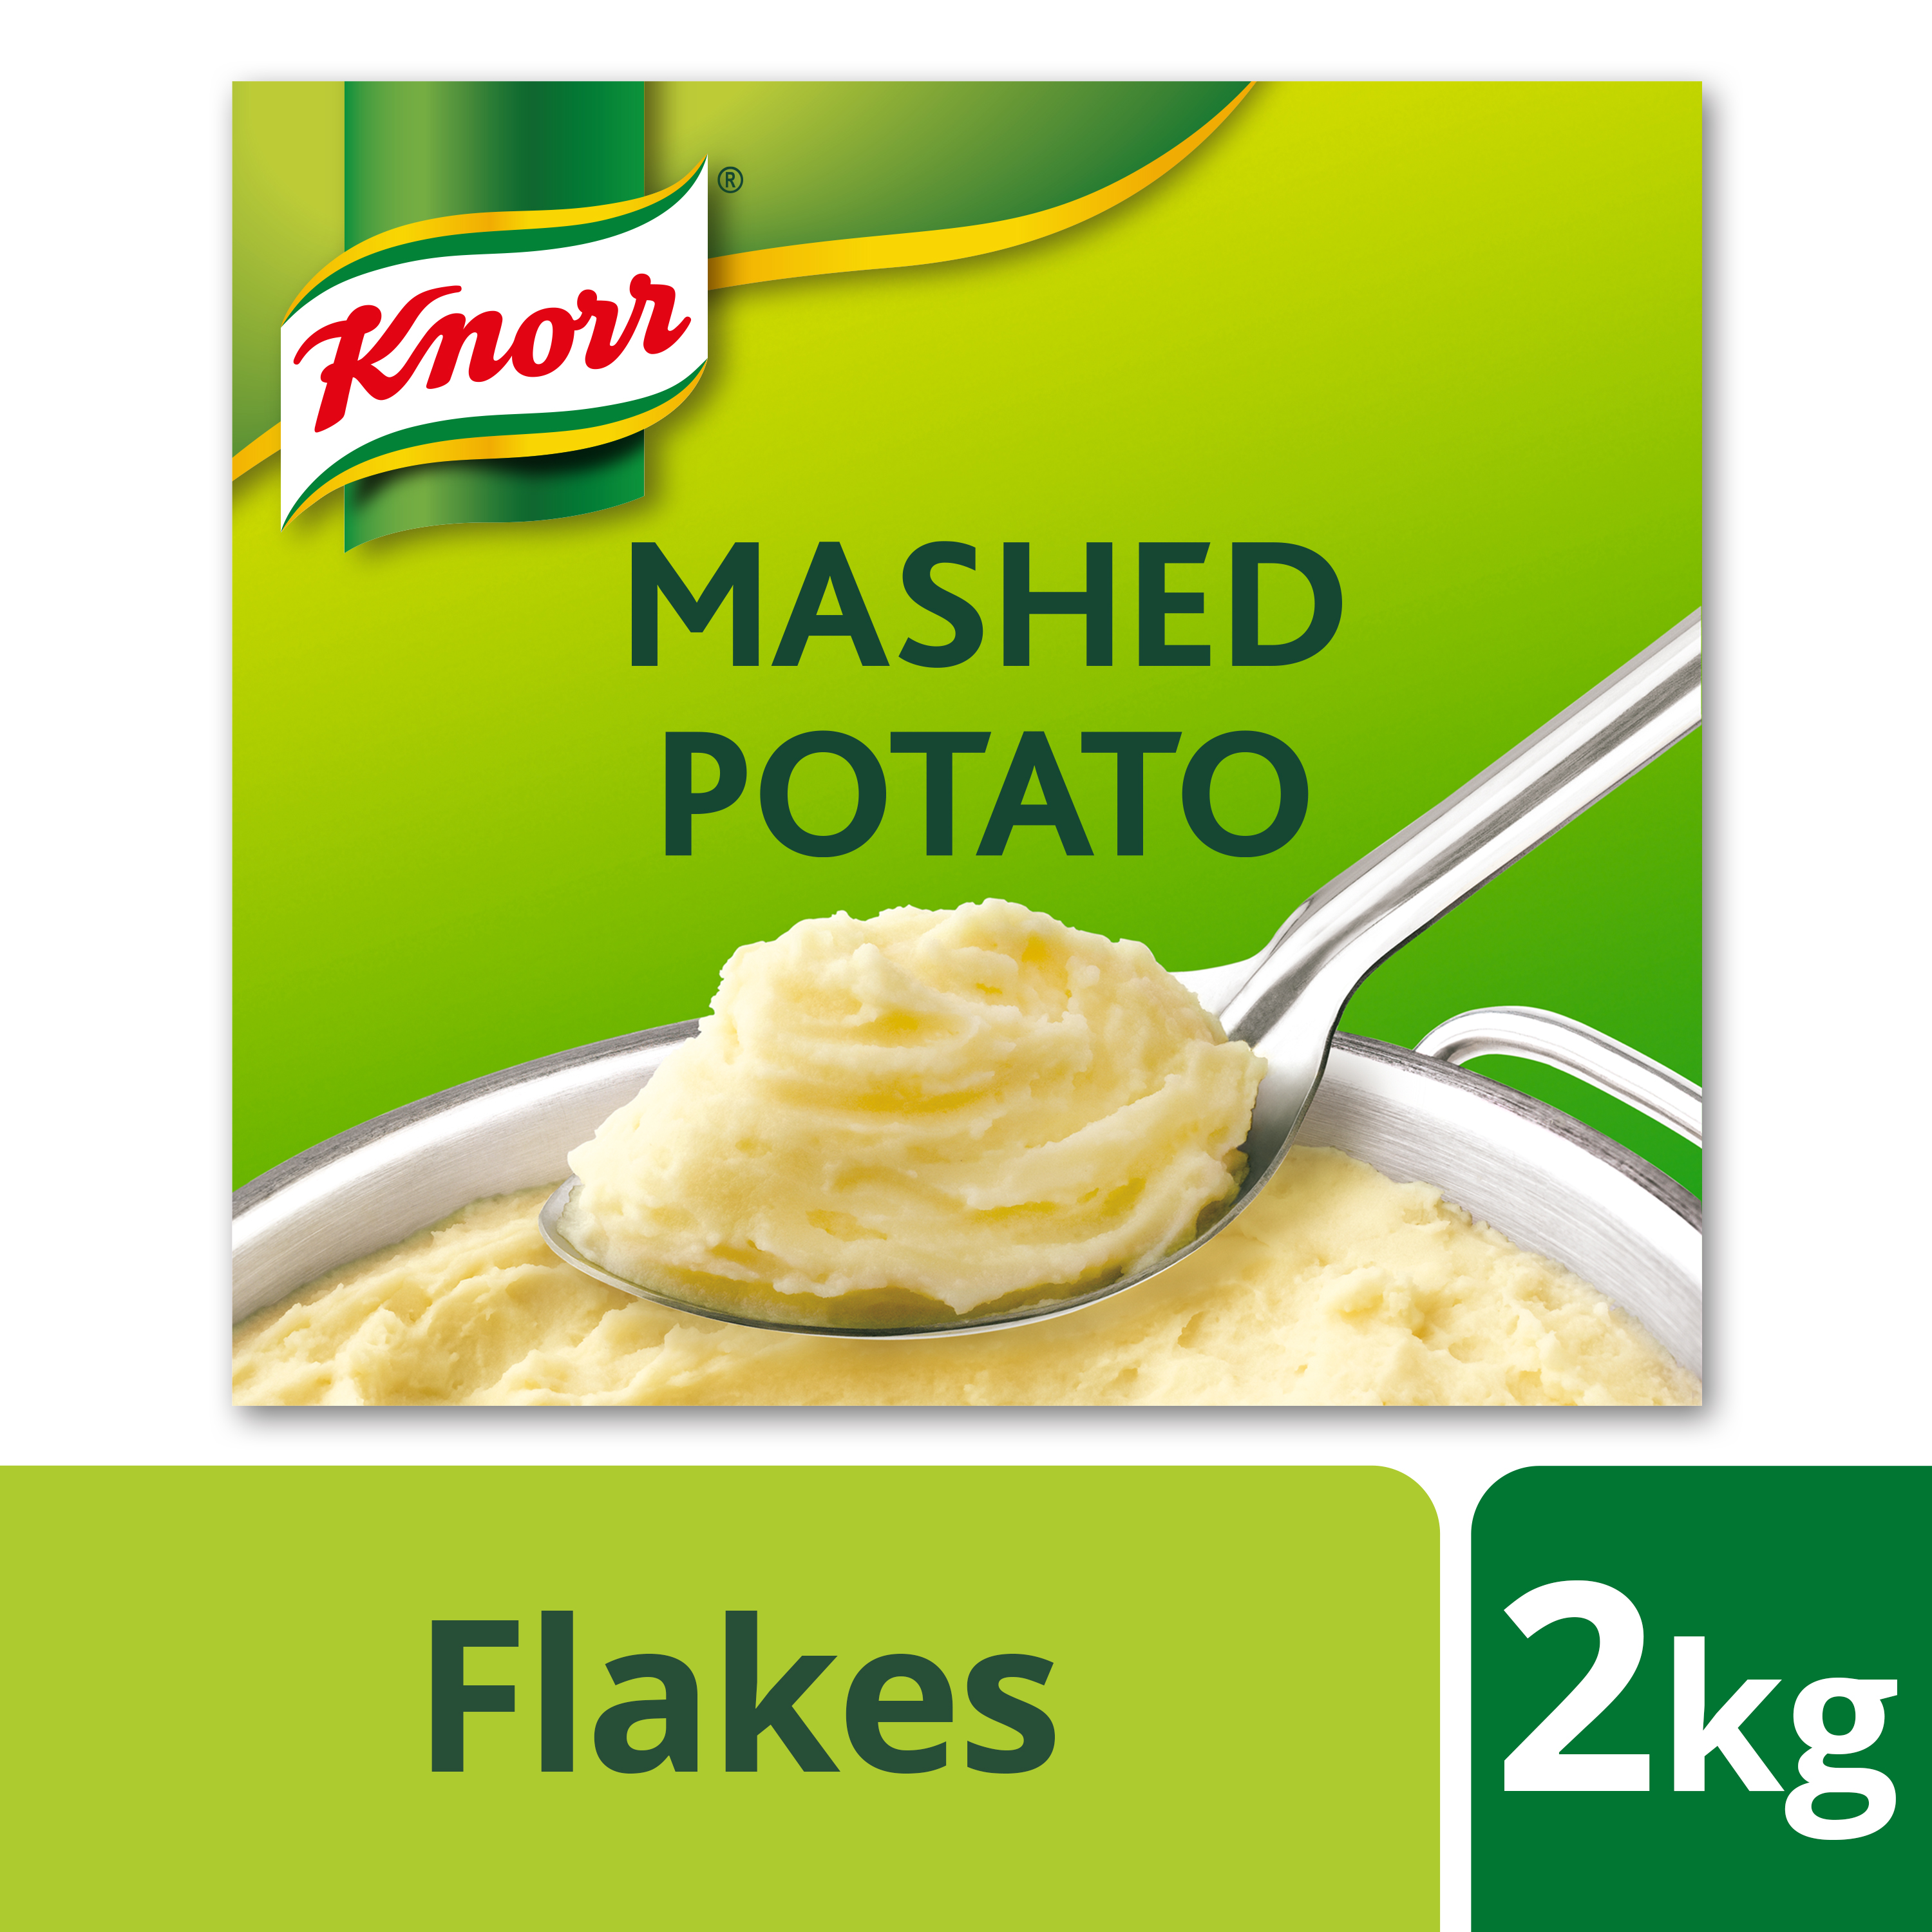 Mashed Potato image